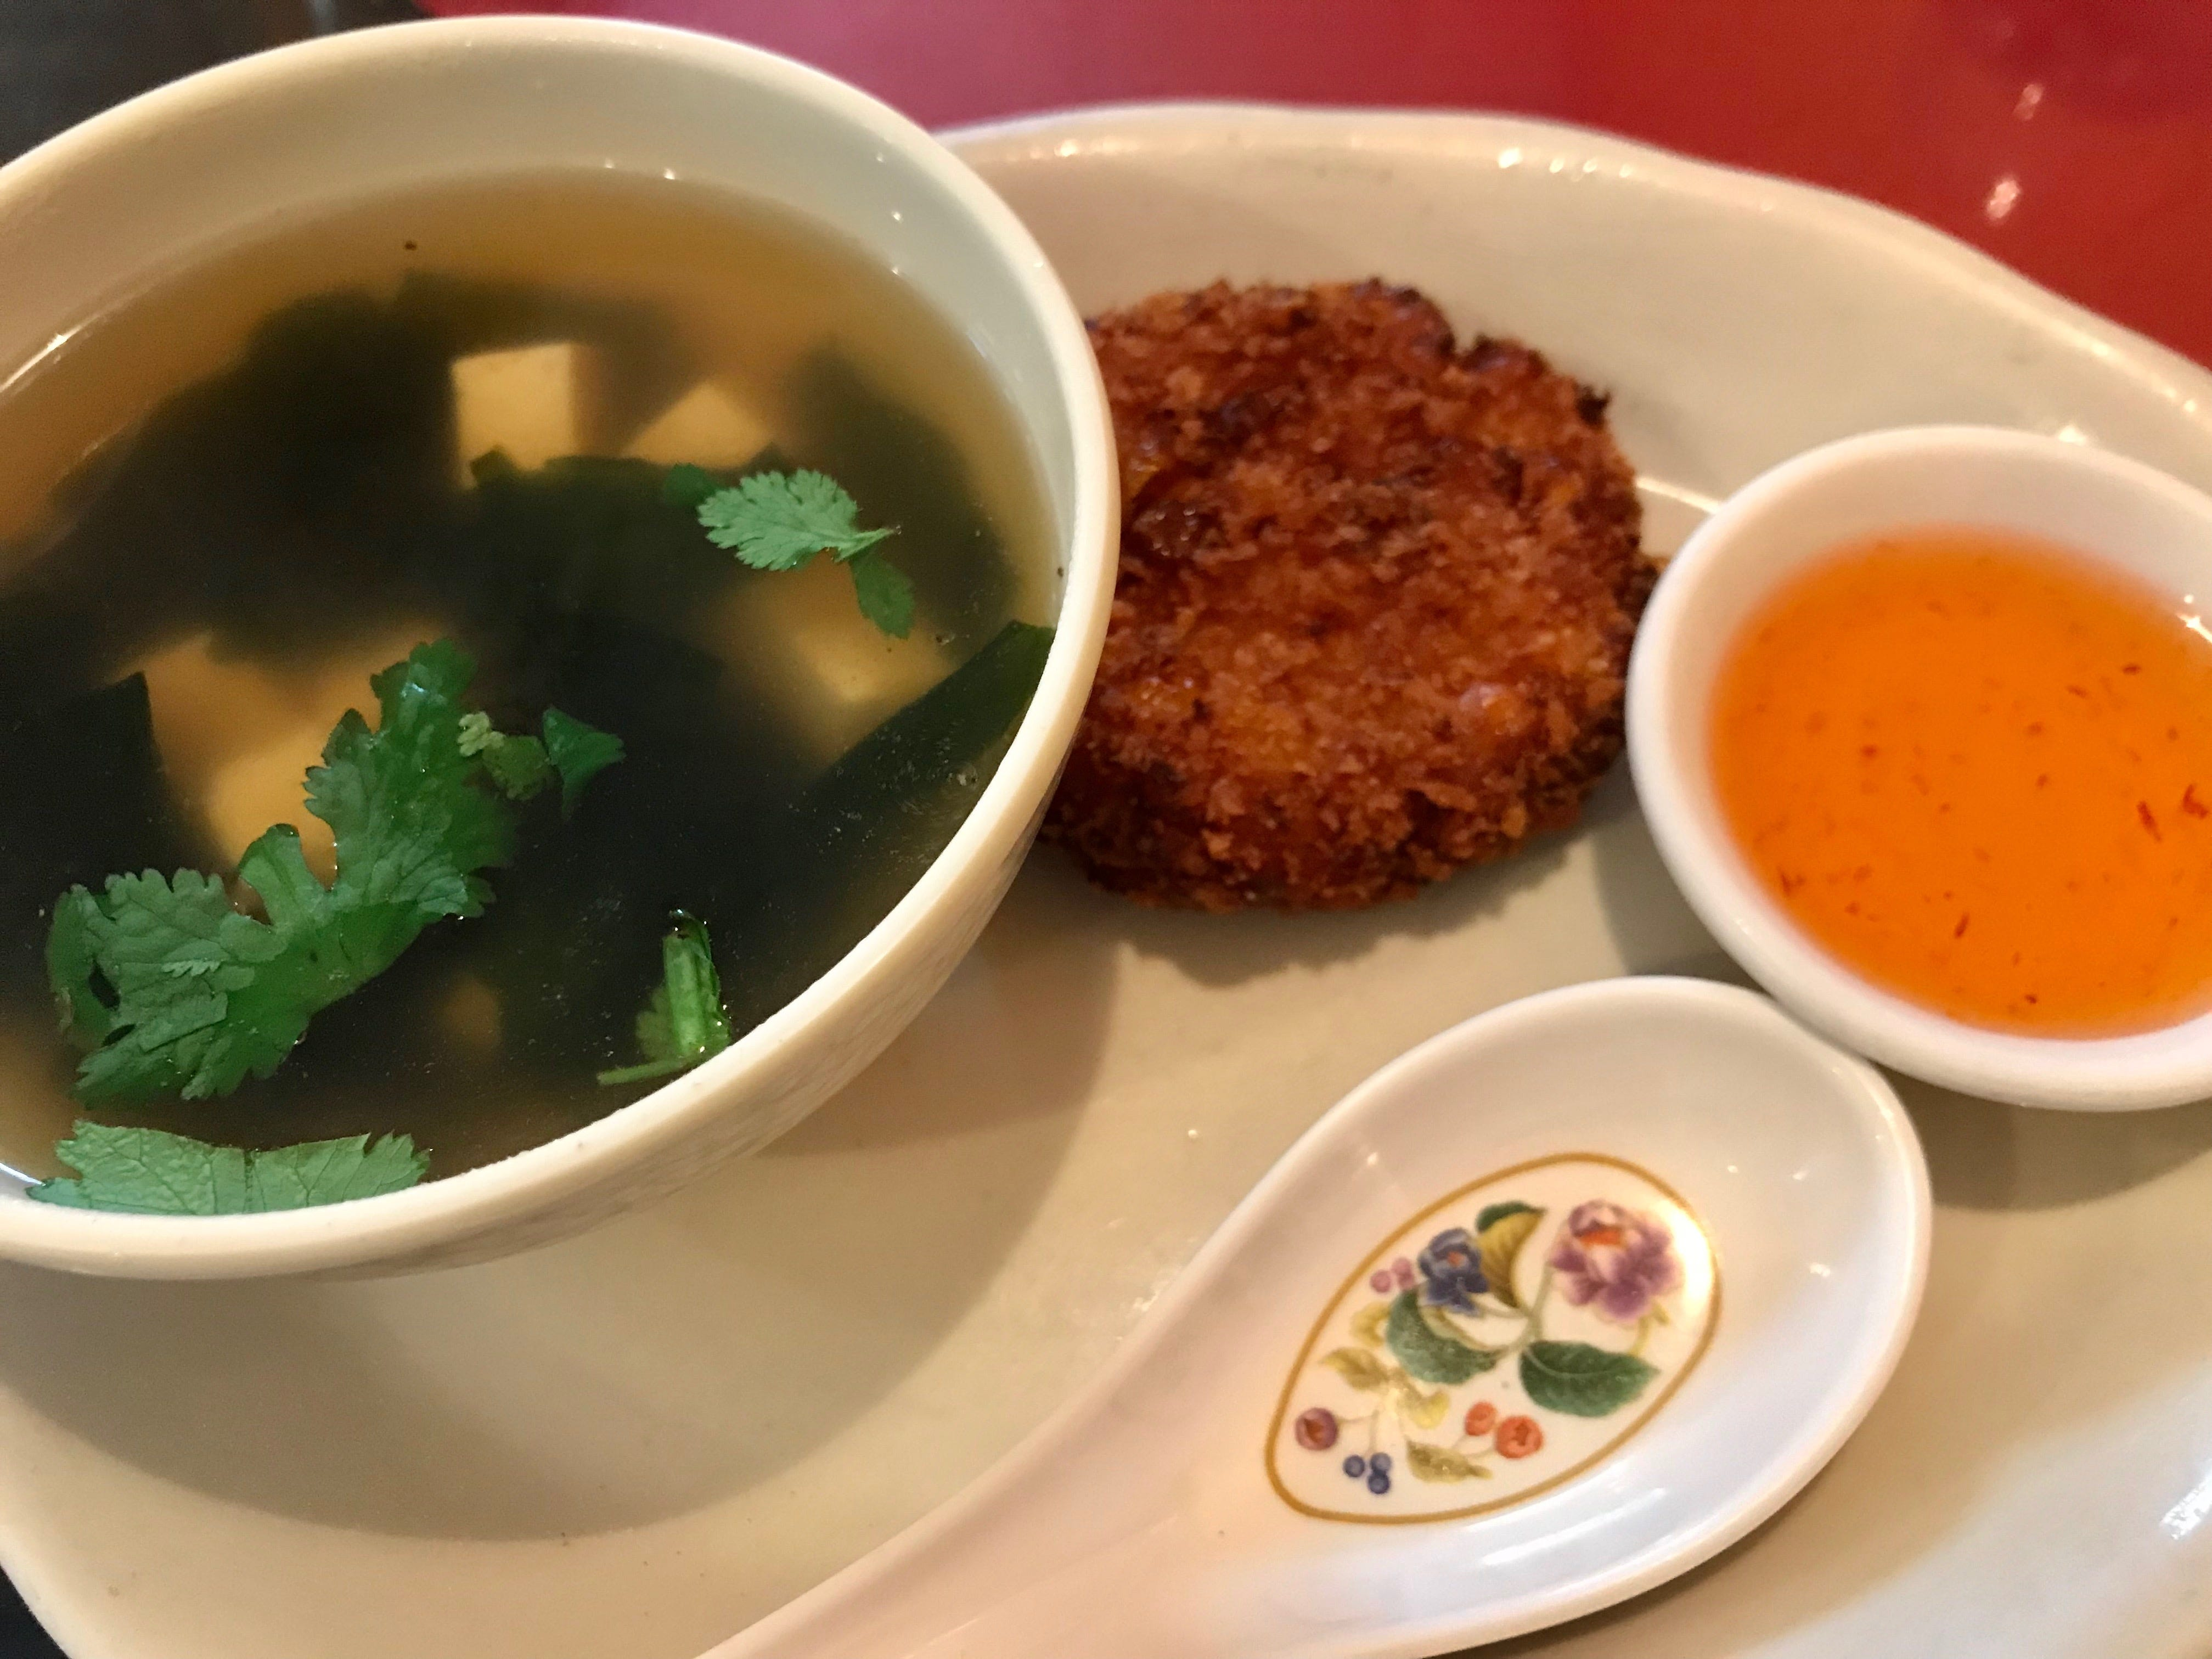 Sarai Talay, a seaweed soup, and Siam Sweet Corn Cakes come as an appetizer as part of a lunch special at Zuzap Thai Cuisine in Clive.